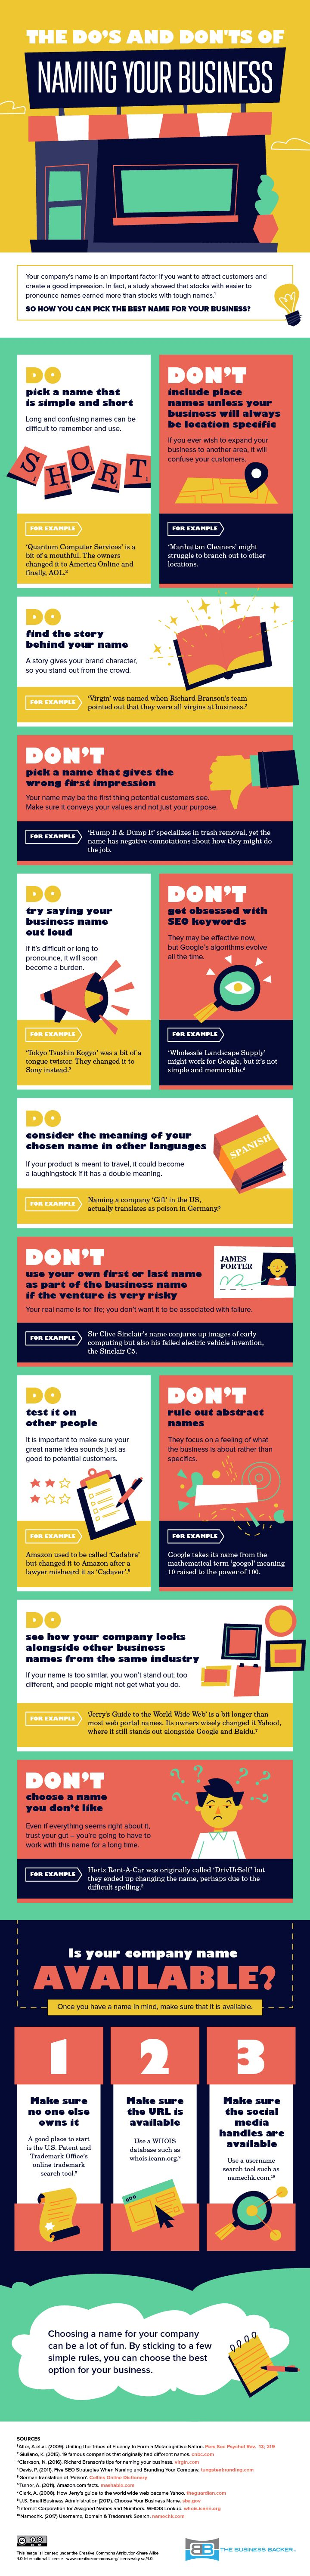 The Do's and Don'ts of Naming Your Business - #infographic